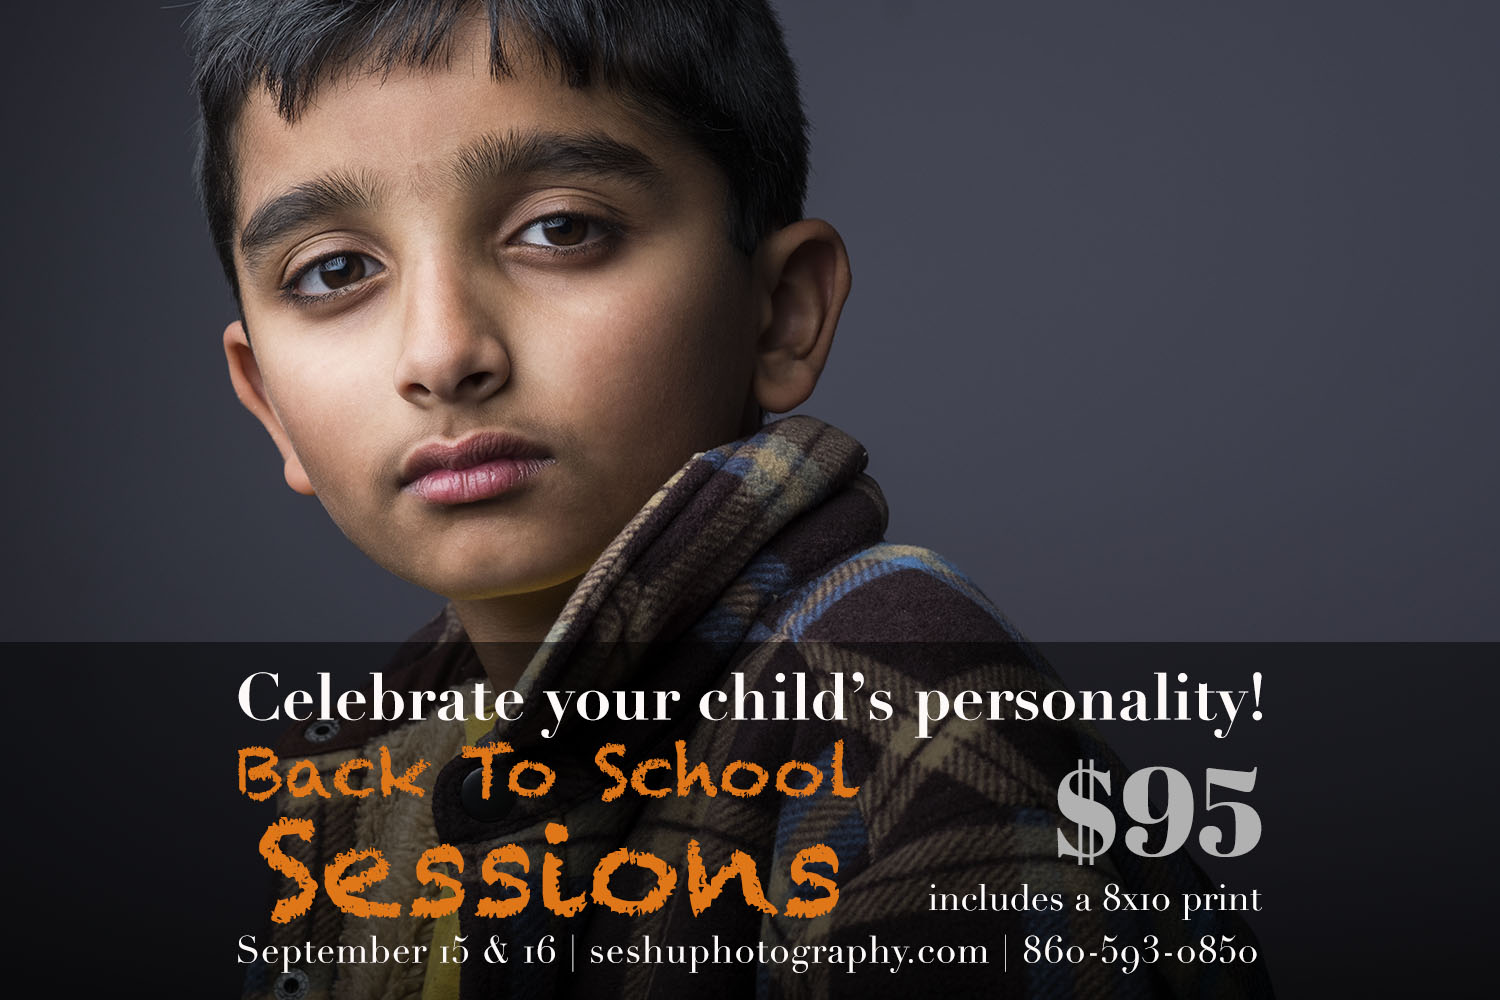 back-to-school-sessions-002.jpg